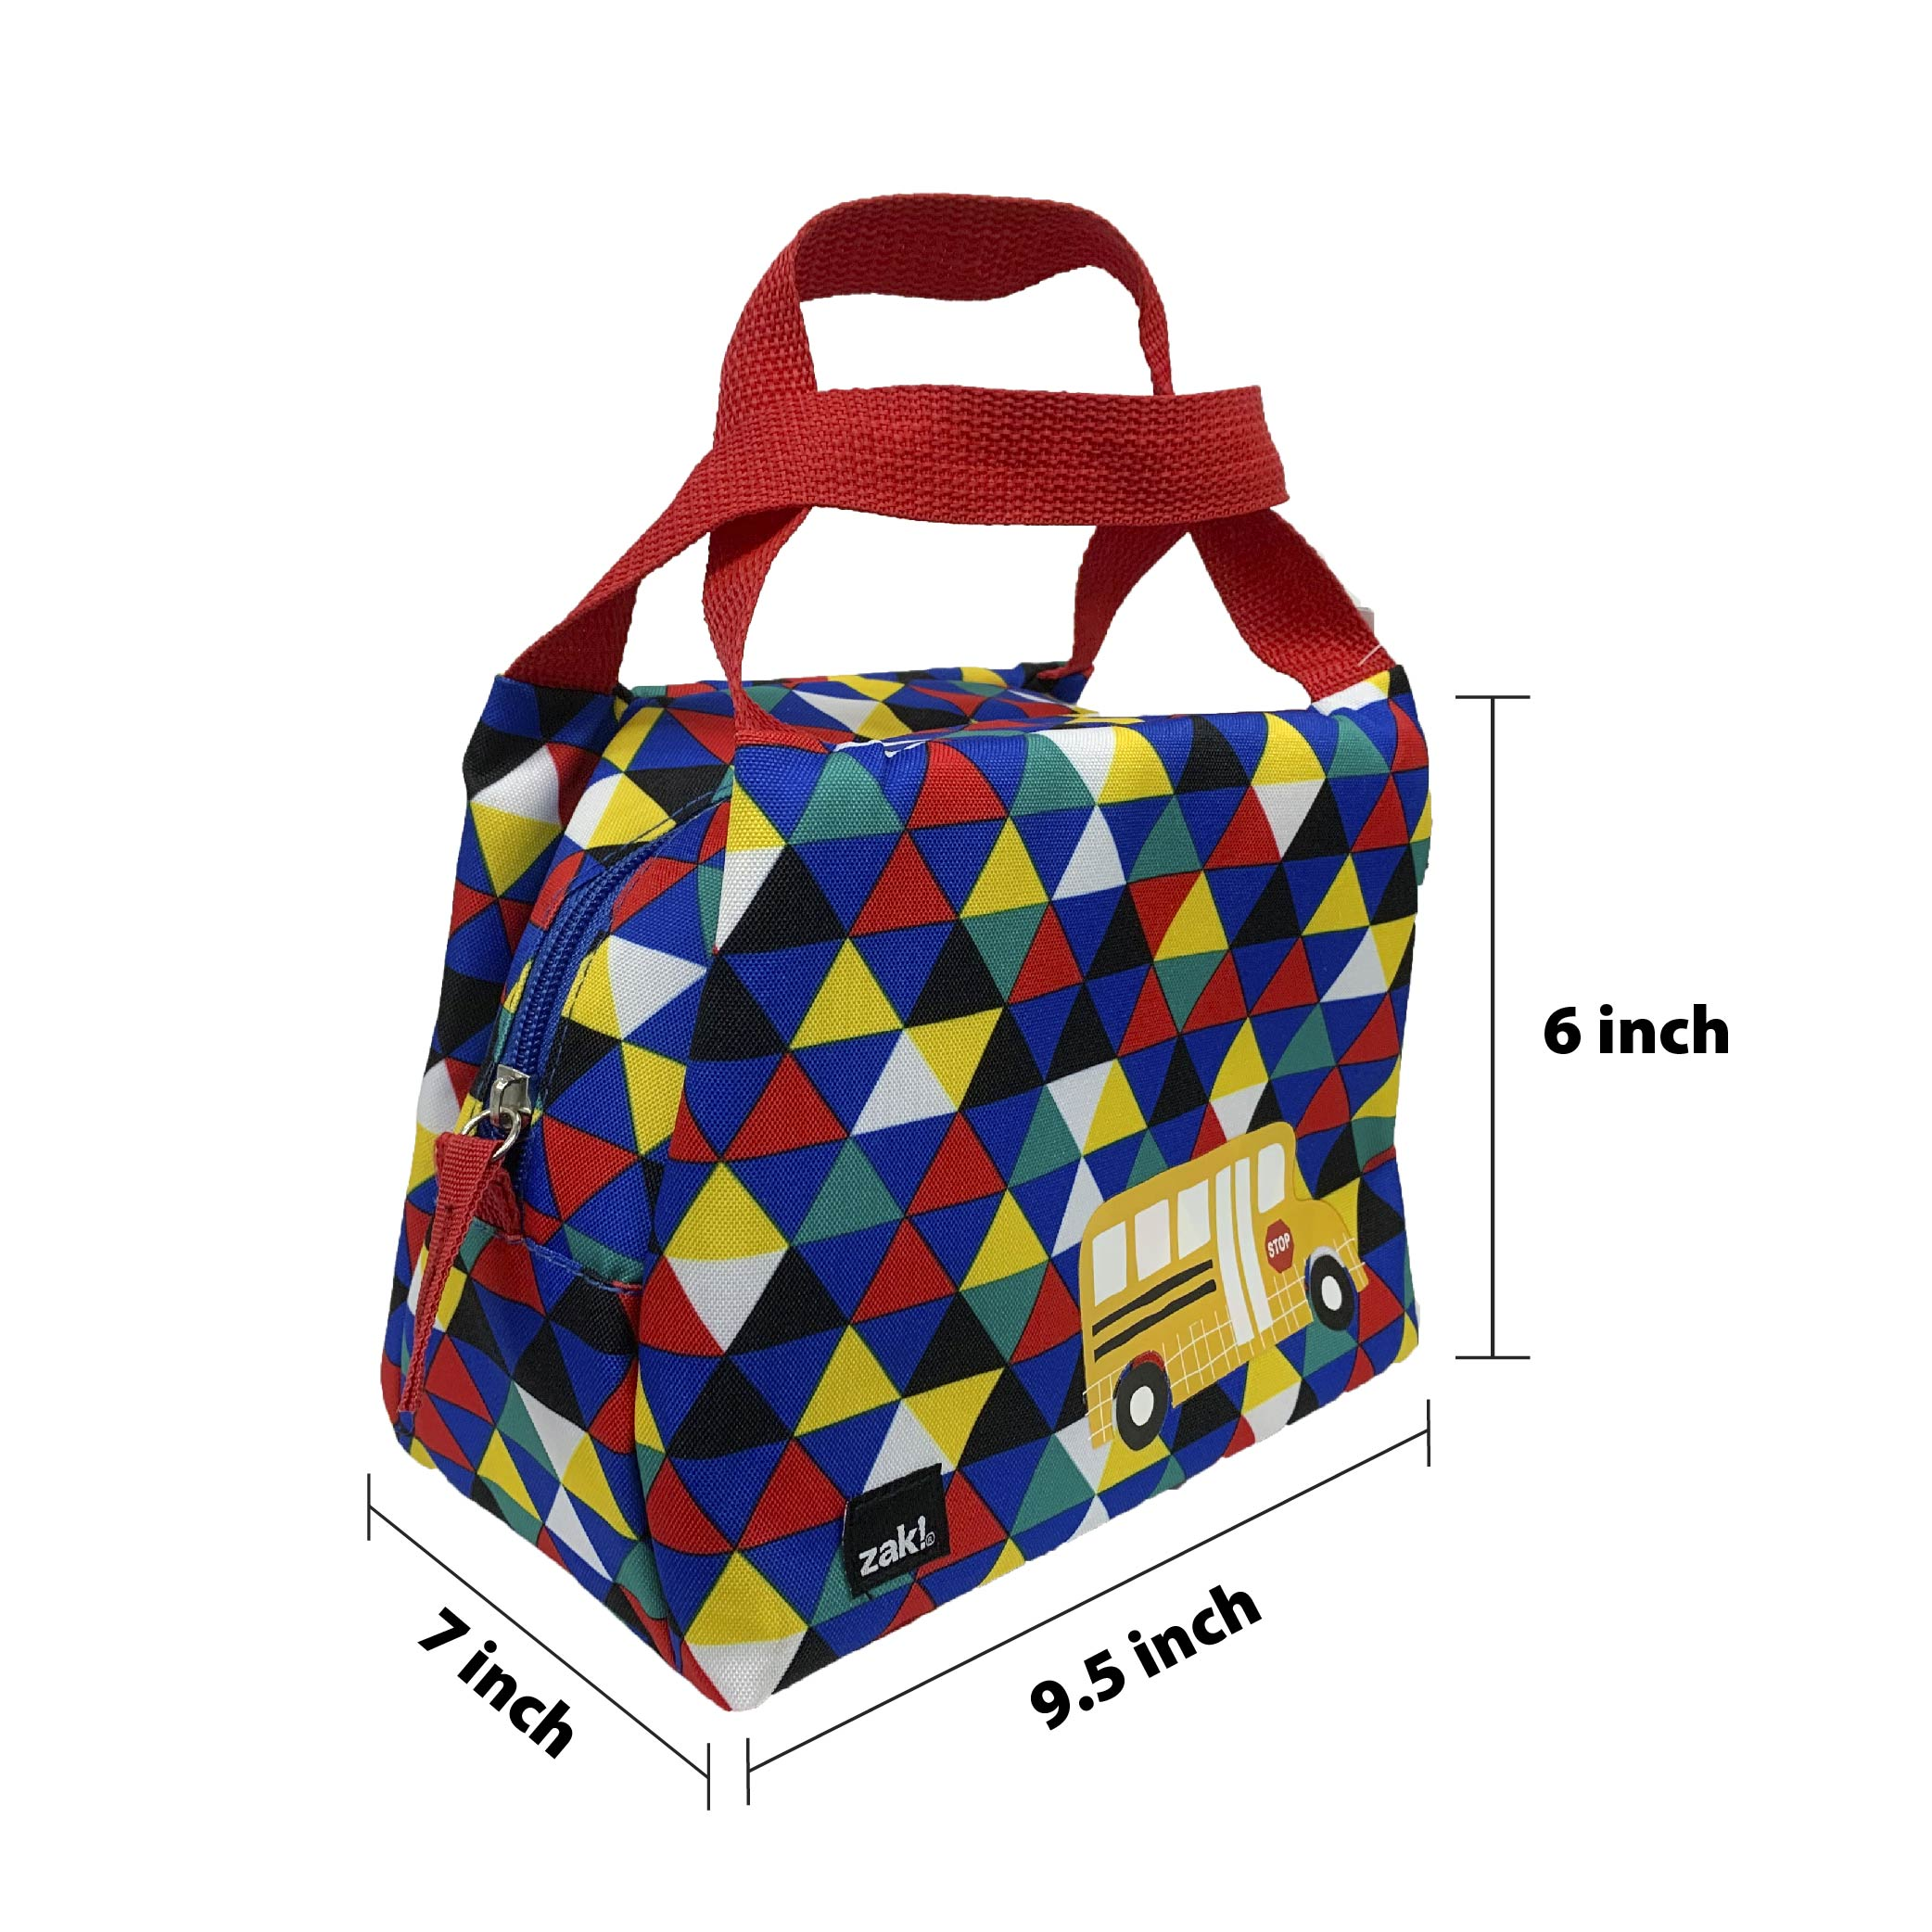 Grid Lock Purse Style Insulated Reusable Lunch Bag, Buses slideshow image 4